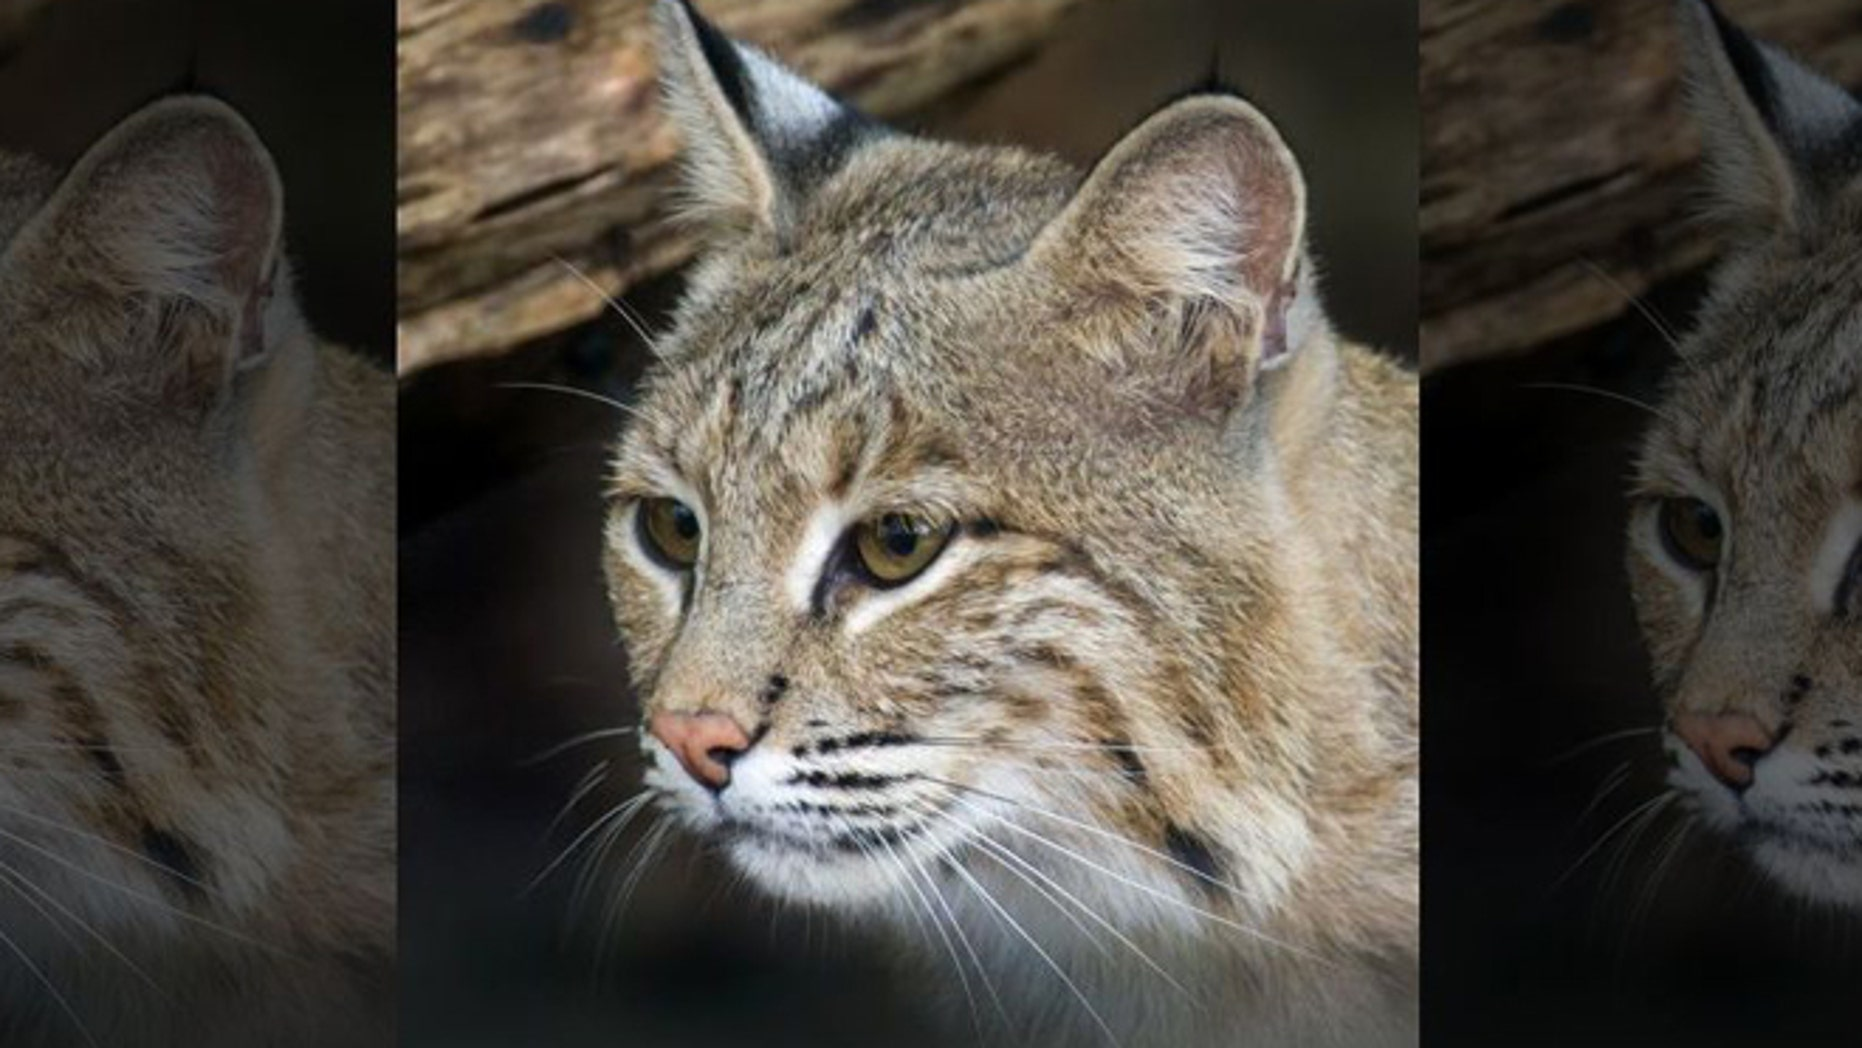 Bobcats are not known to be aggressive to humans, according to experts.